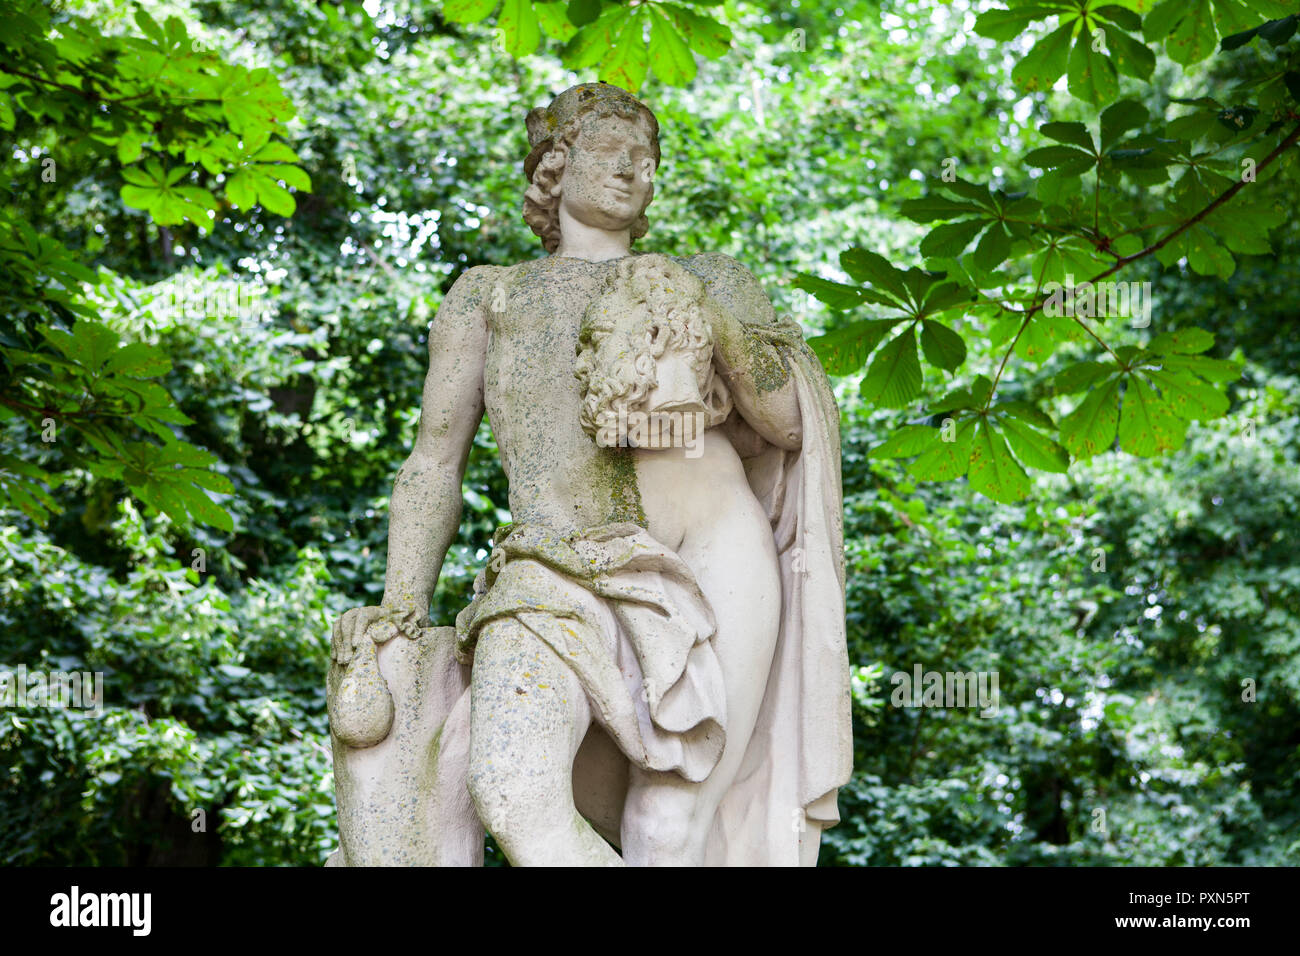 Sculpture of Mercury at Nordkirchen Moated Palace, Germany - Stock Image